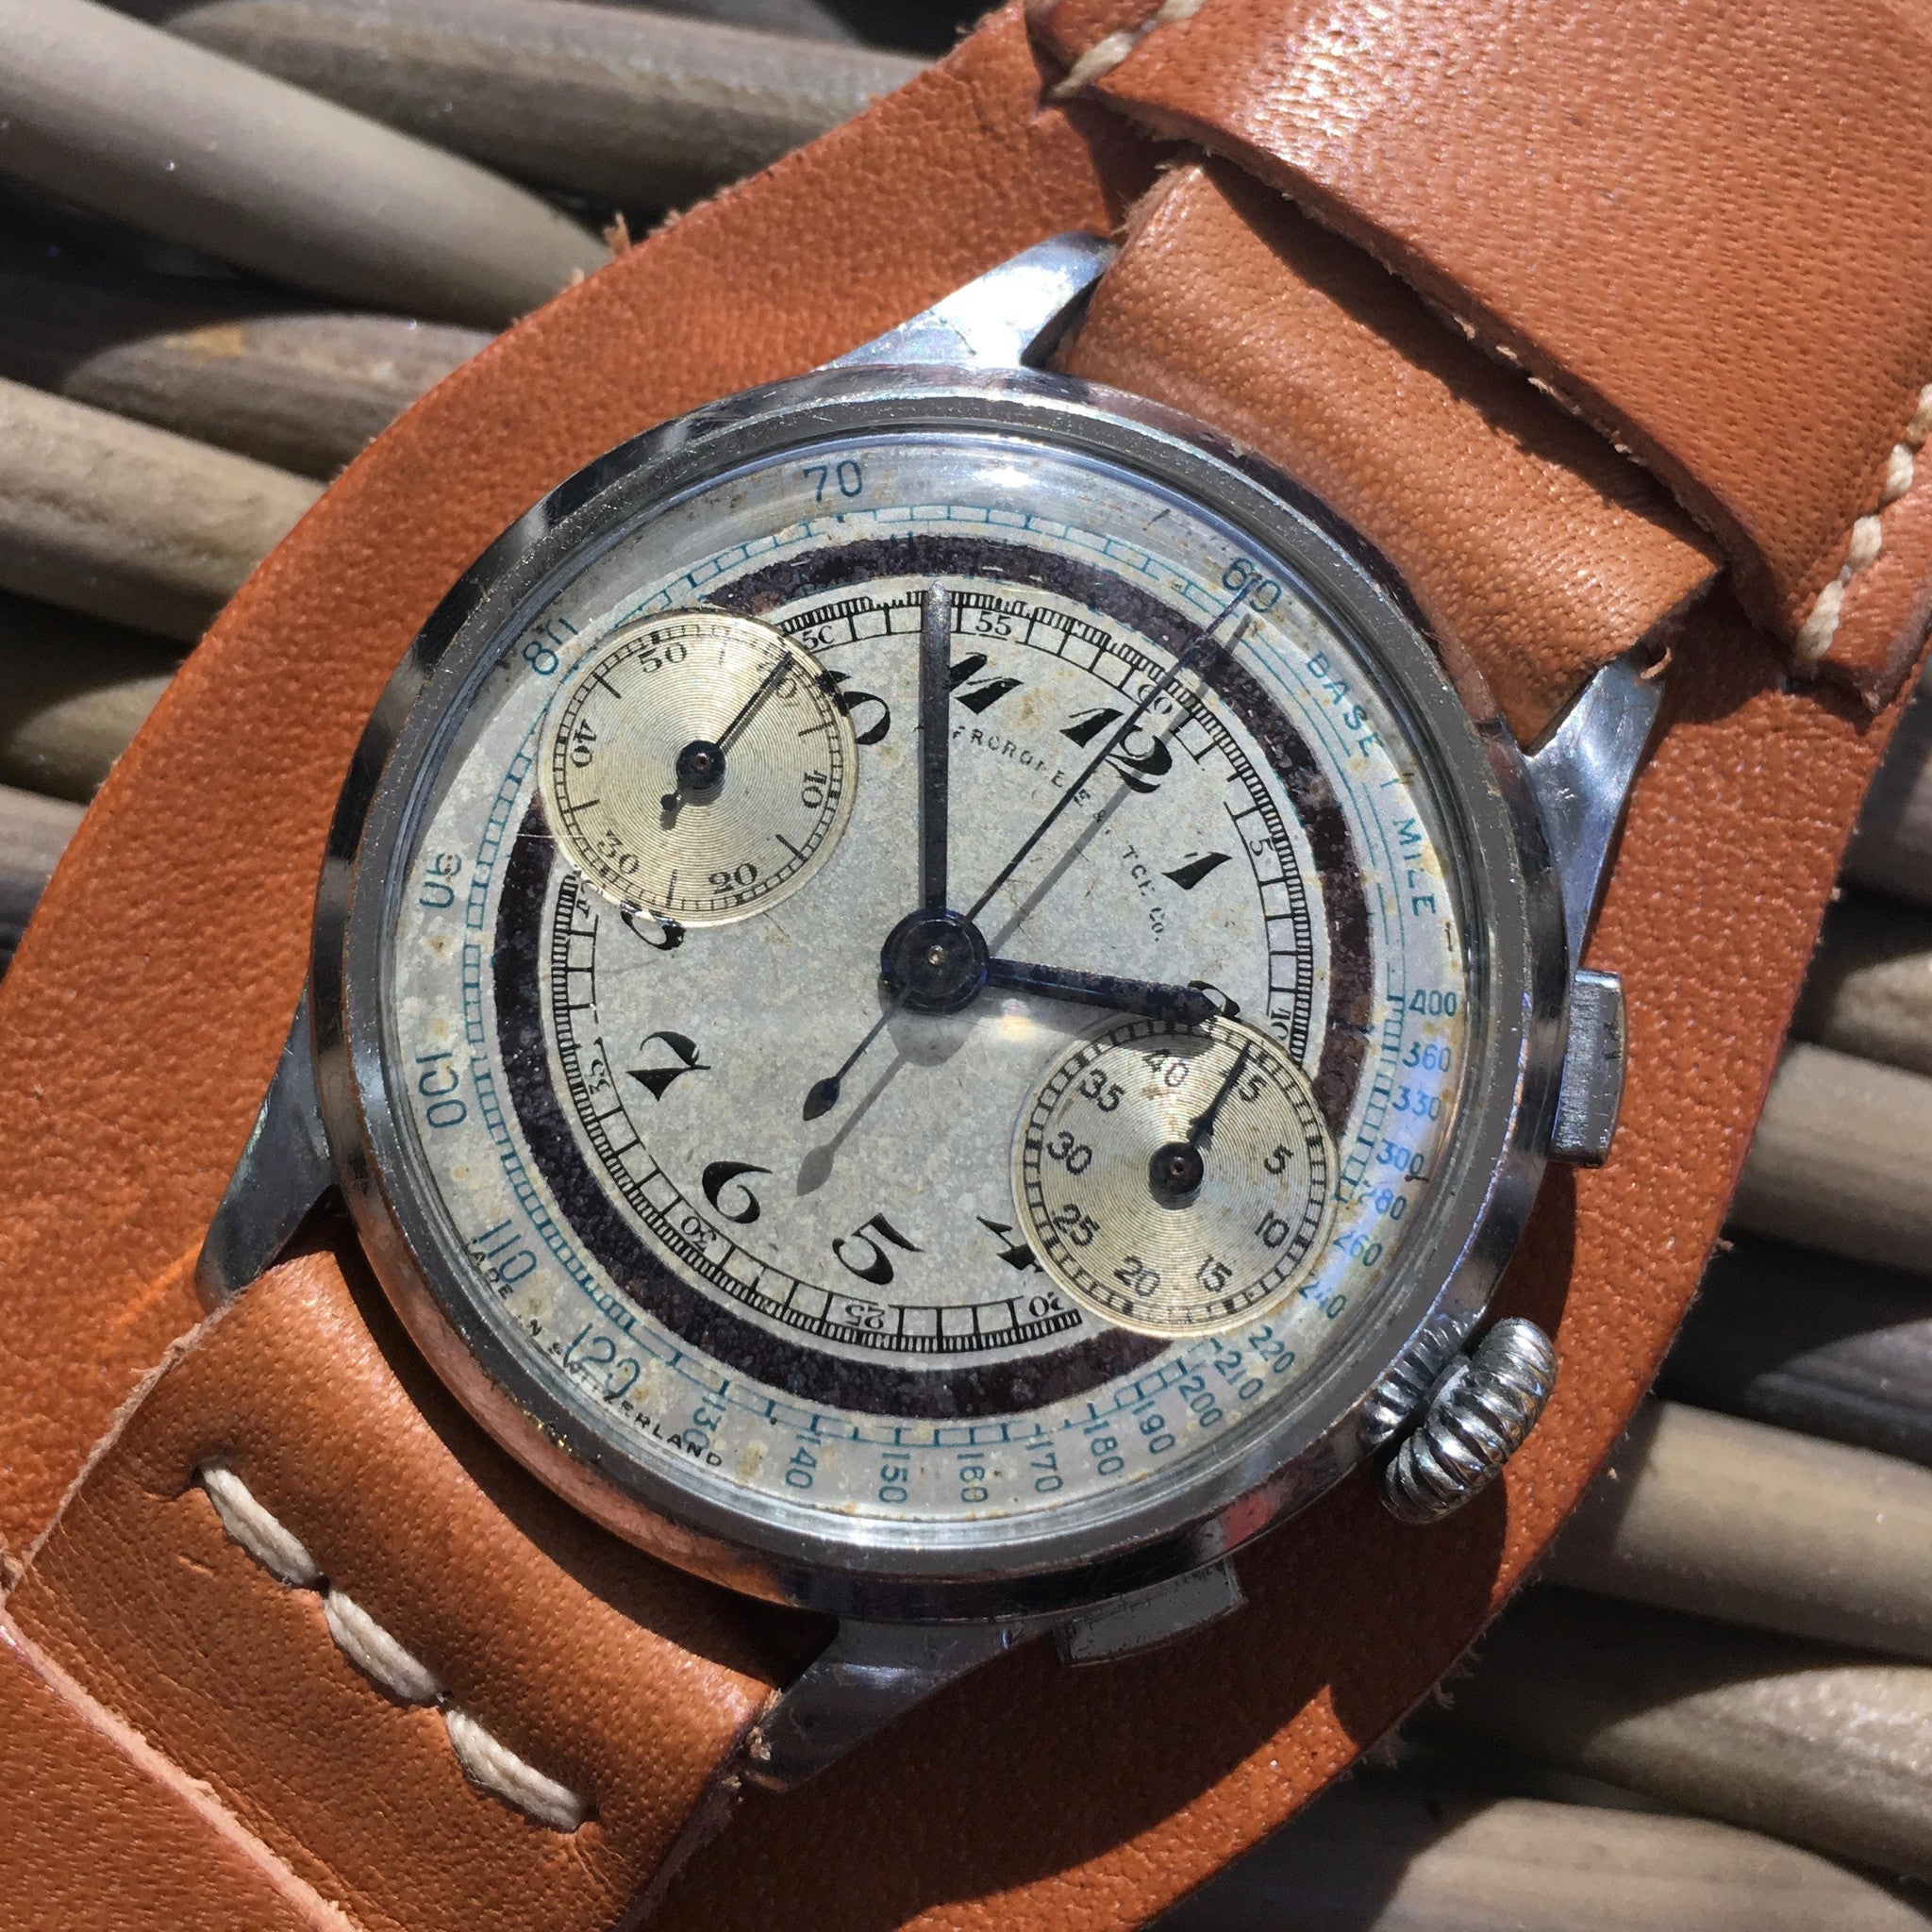 Vintage Abercrombie & Fitch Silver Dial Chromium Steel Chronograph 1930's Wristwatch - Hashtag Watch Company